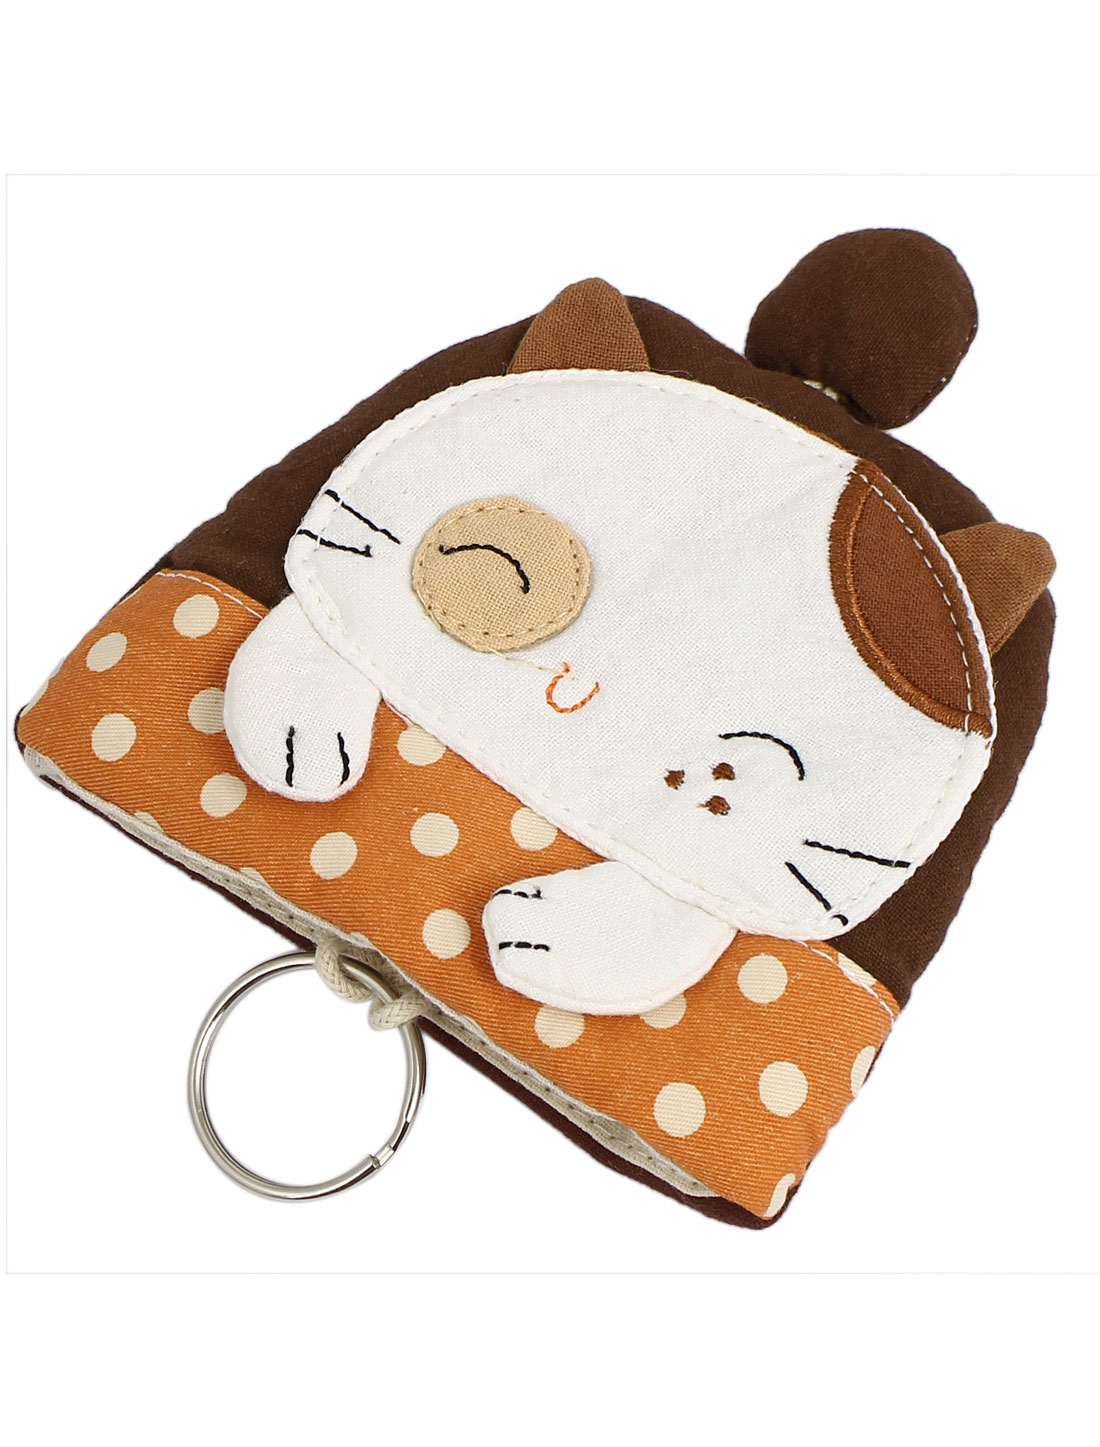 Lady Split Ring Strap Blink Cat Pattern Zip Up Coin Key Purse Bag Wallet Pouch Coffee Color